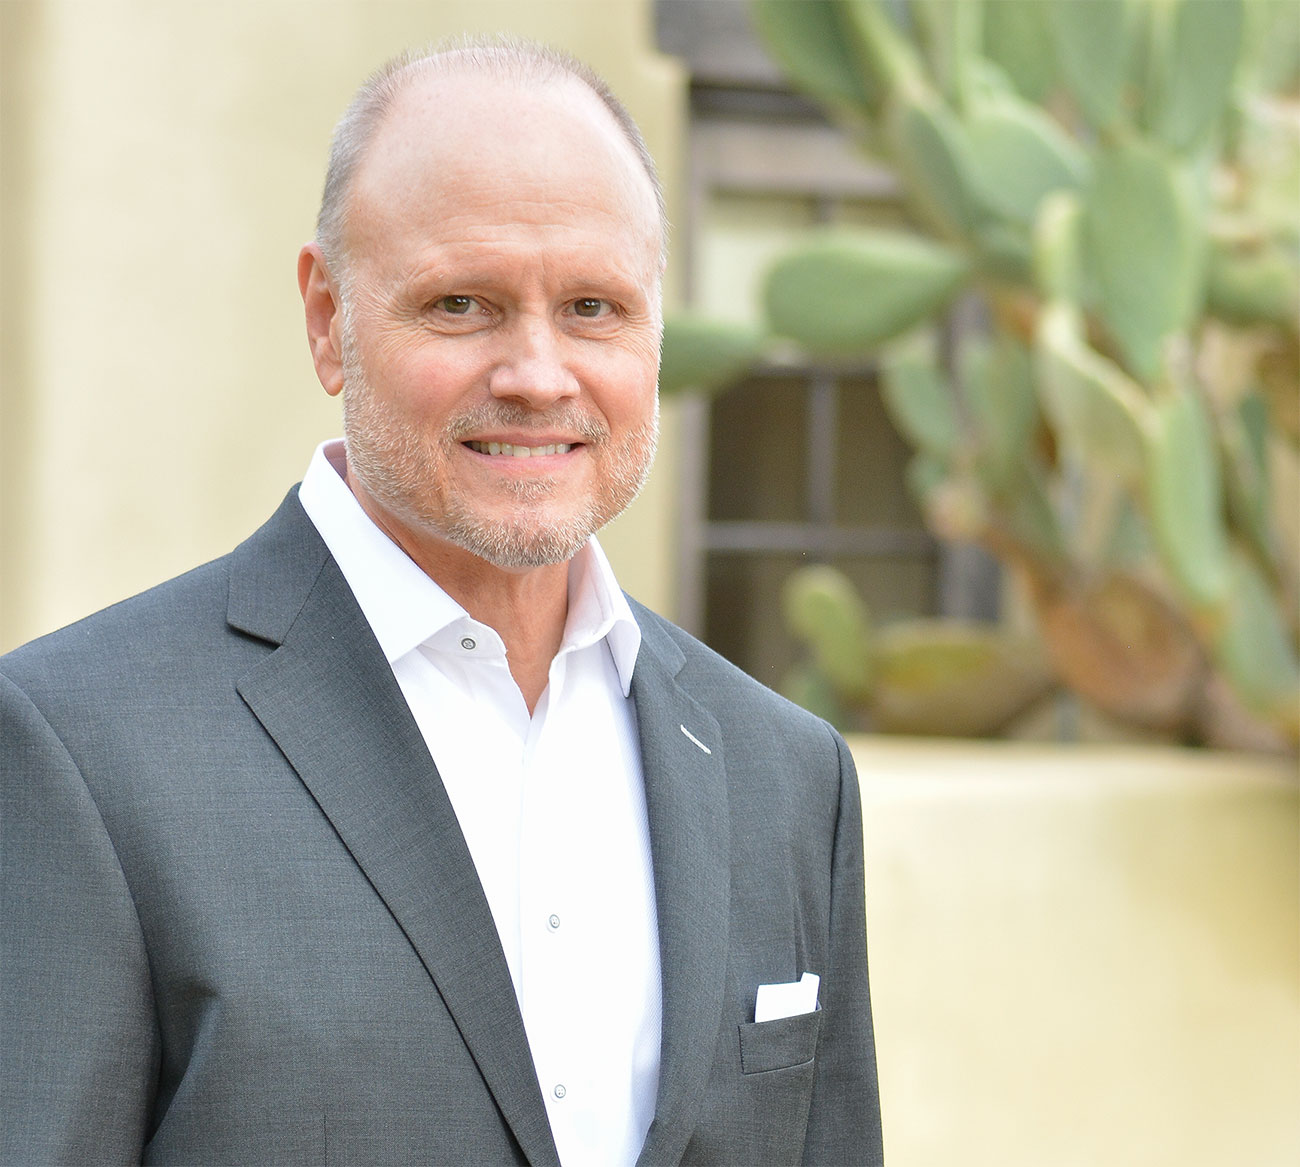 Stephen P Beals, MD, PC